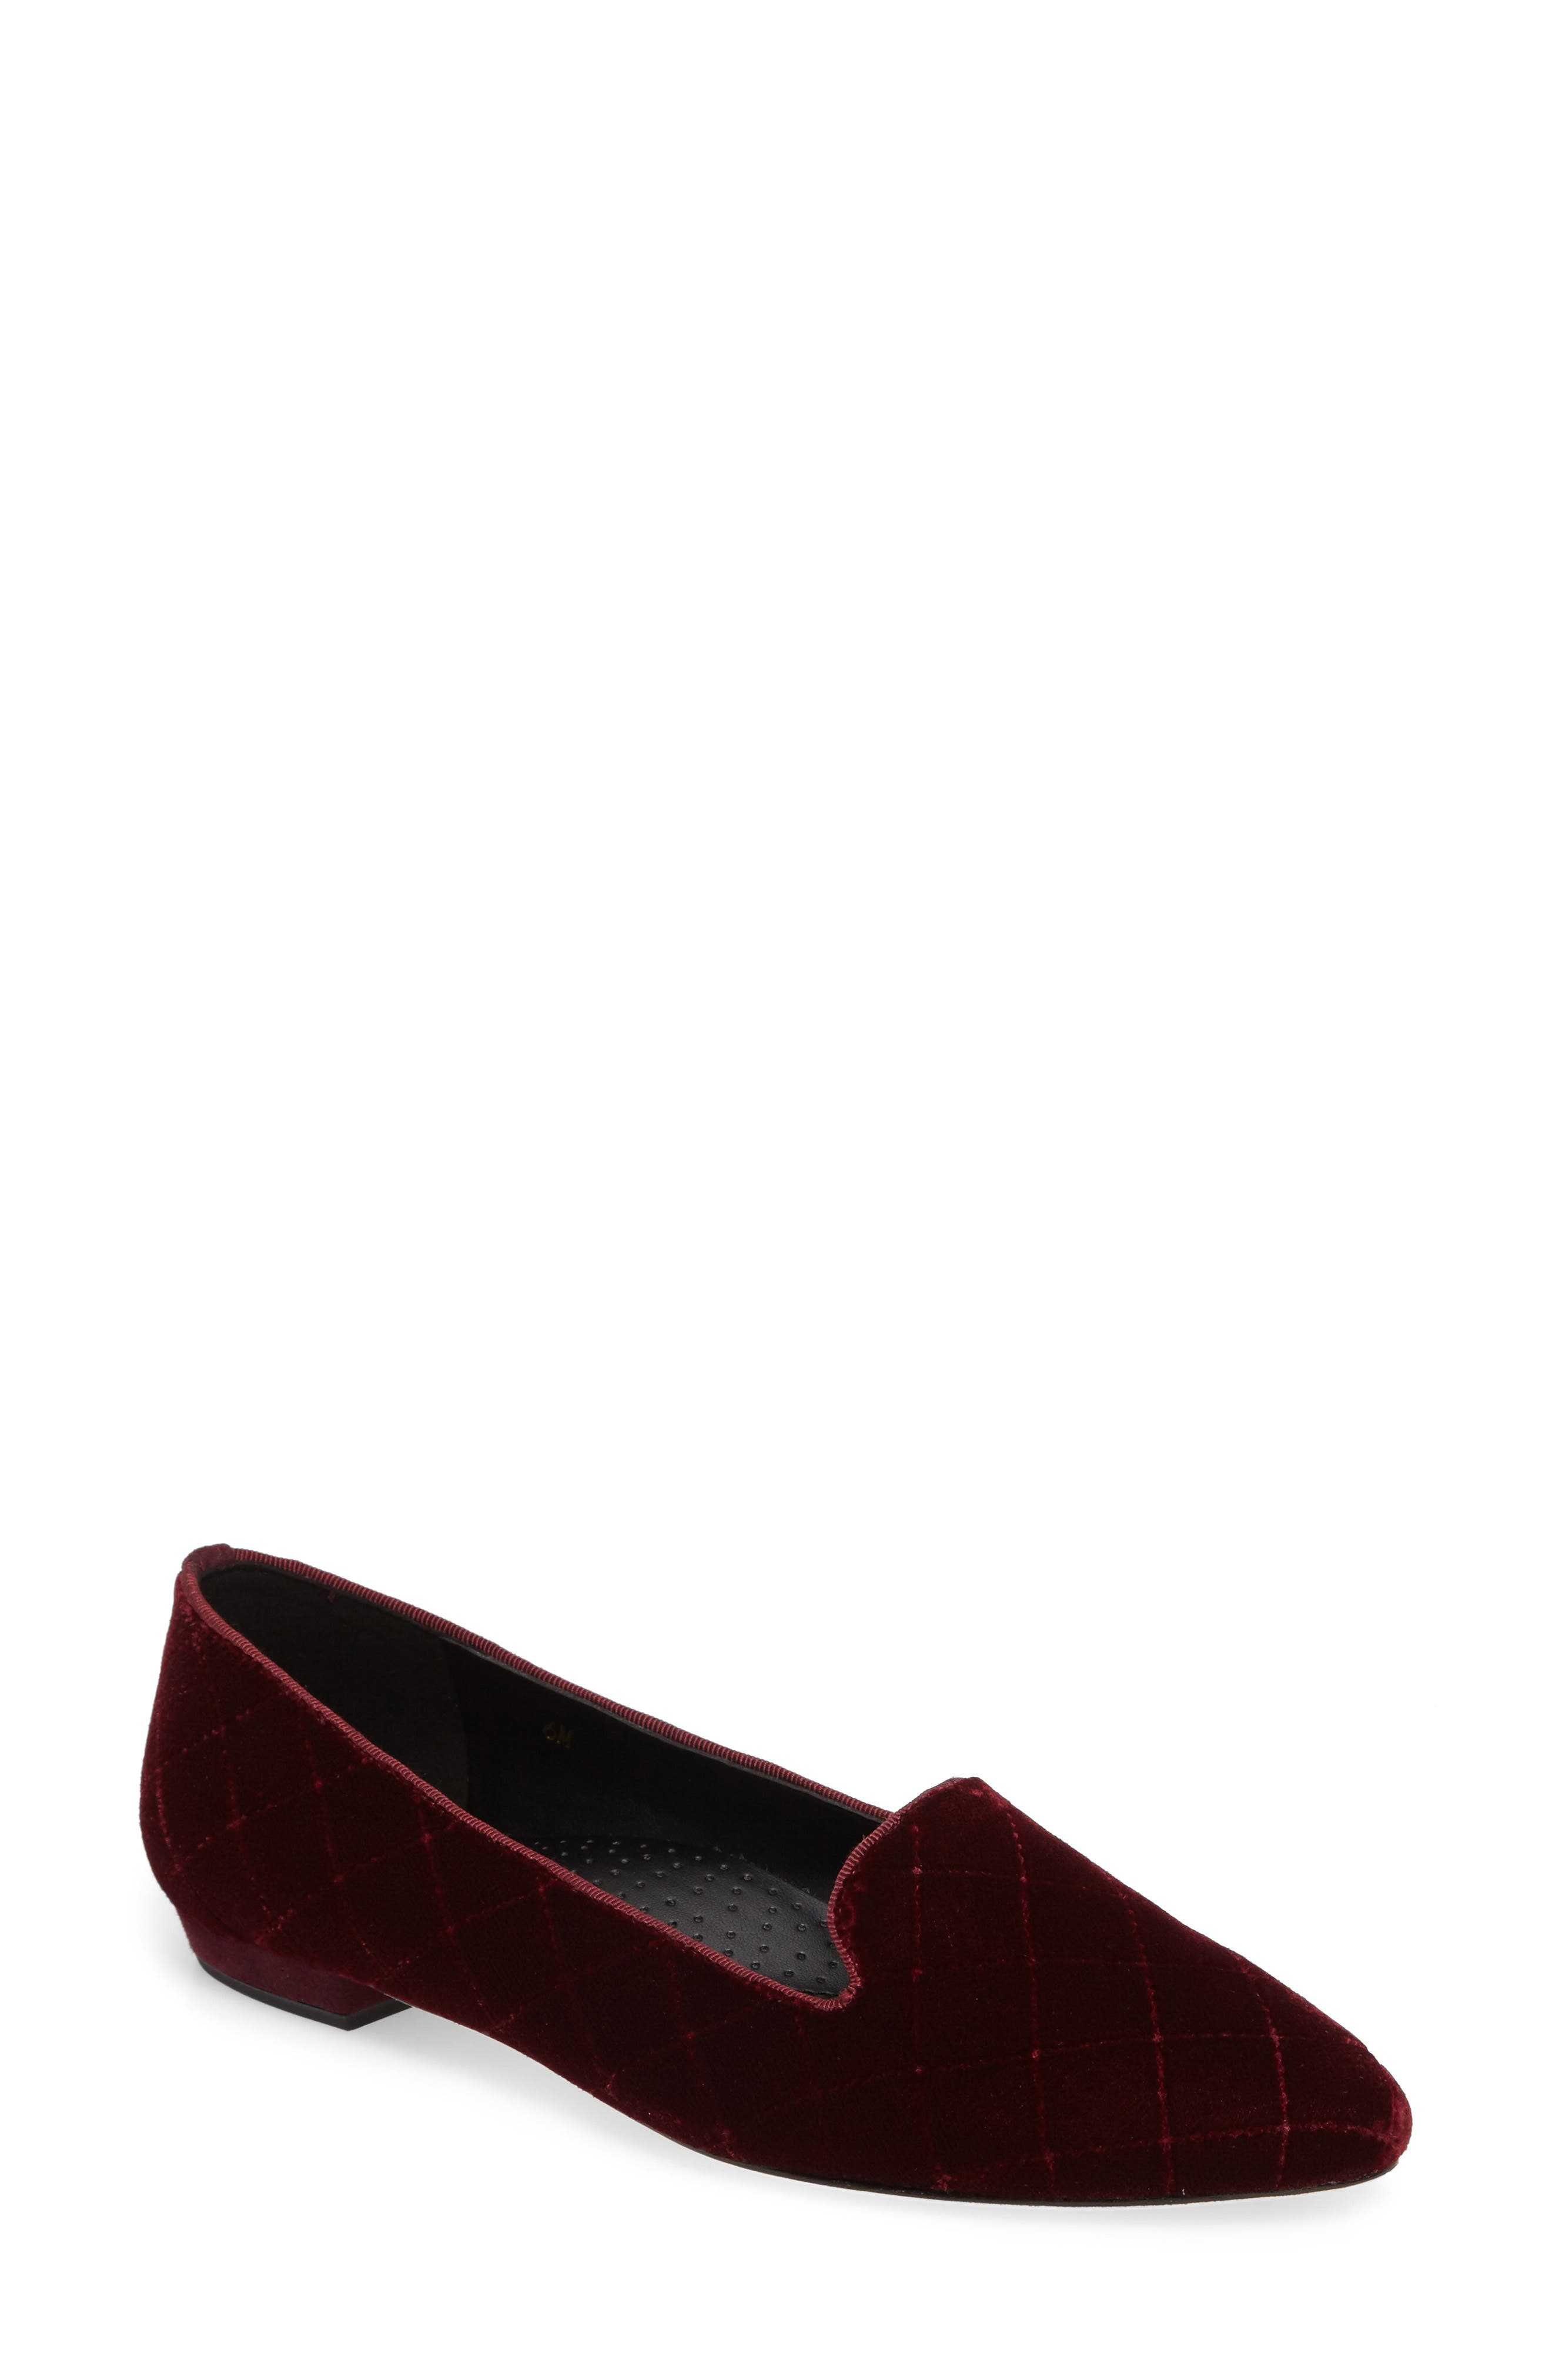 Gannie Diamond Pattern Loafer,                             Main thumbnail 3, color,